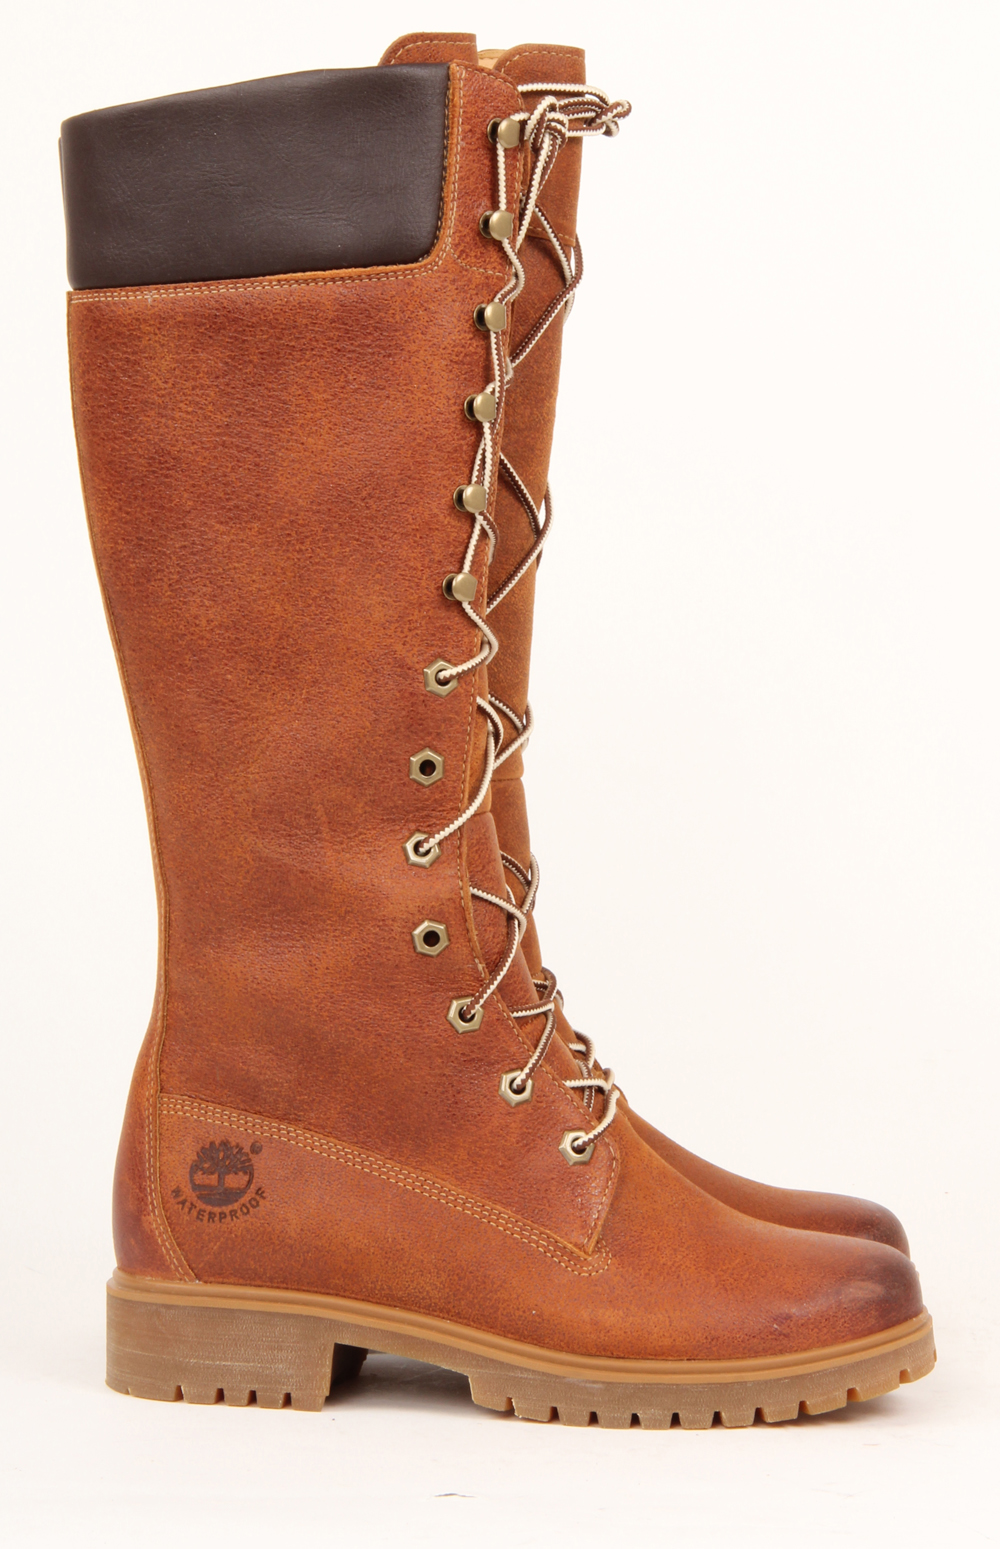 womens timberland knee high calf winter fur